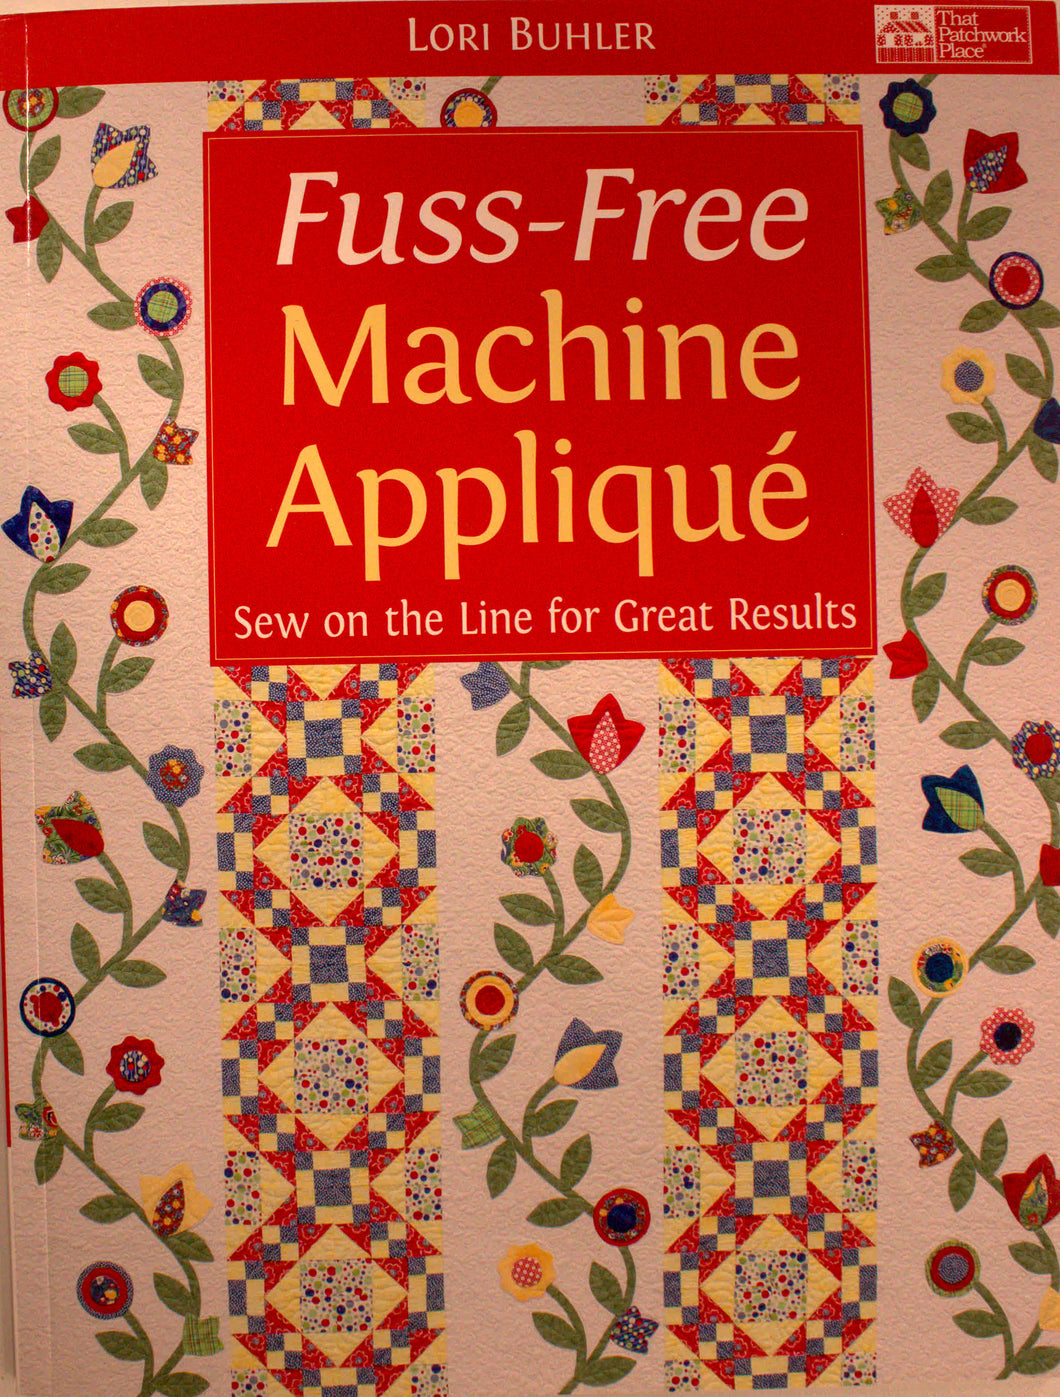 Fuss-Free Machine Appliqué: Sew on the Line for Great Results